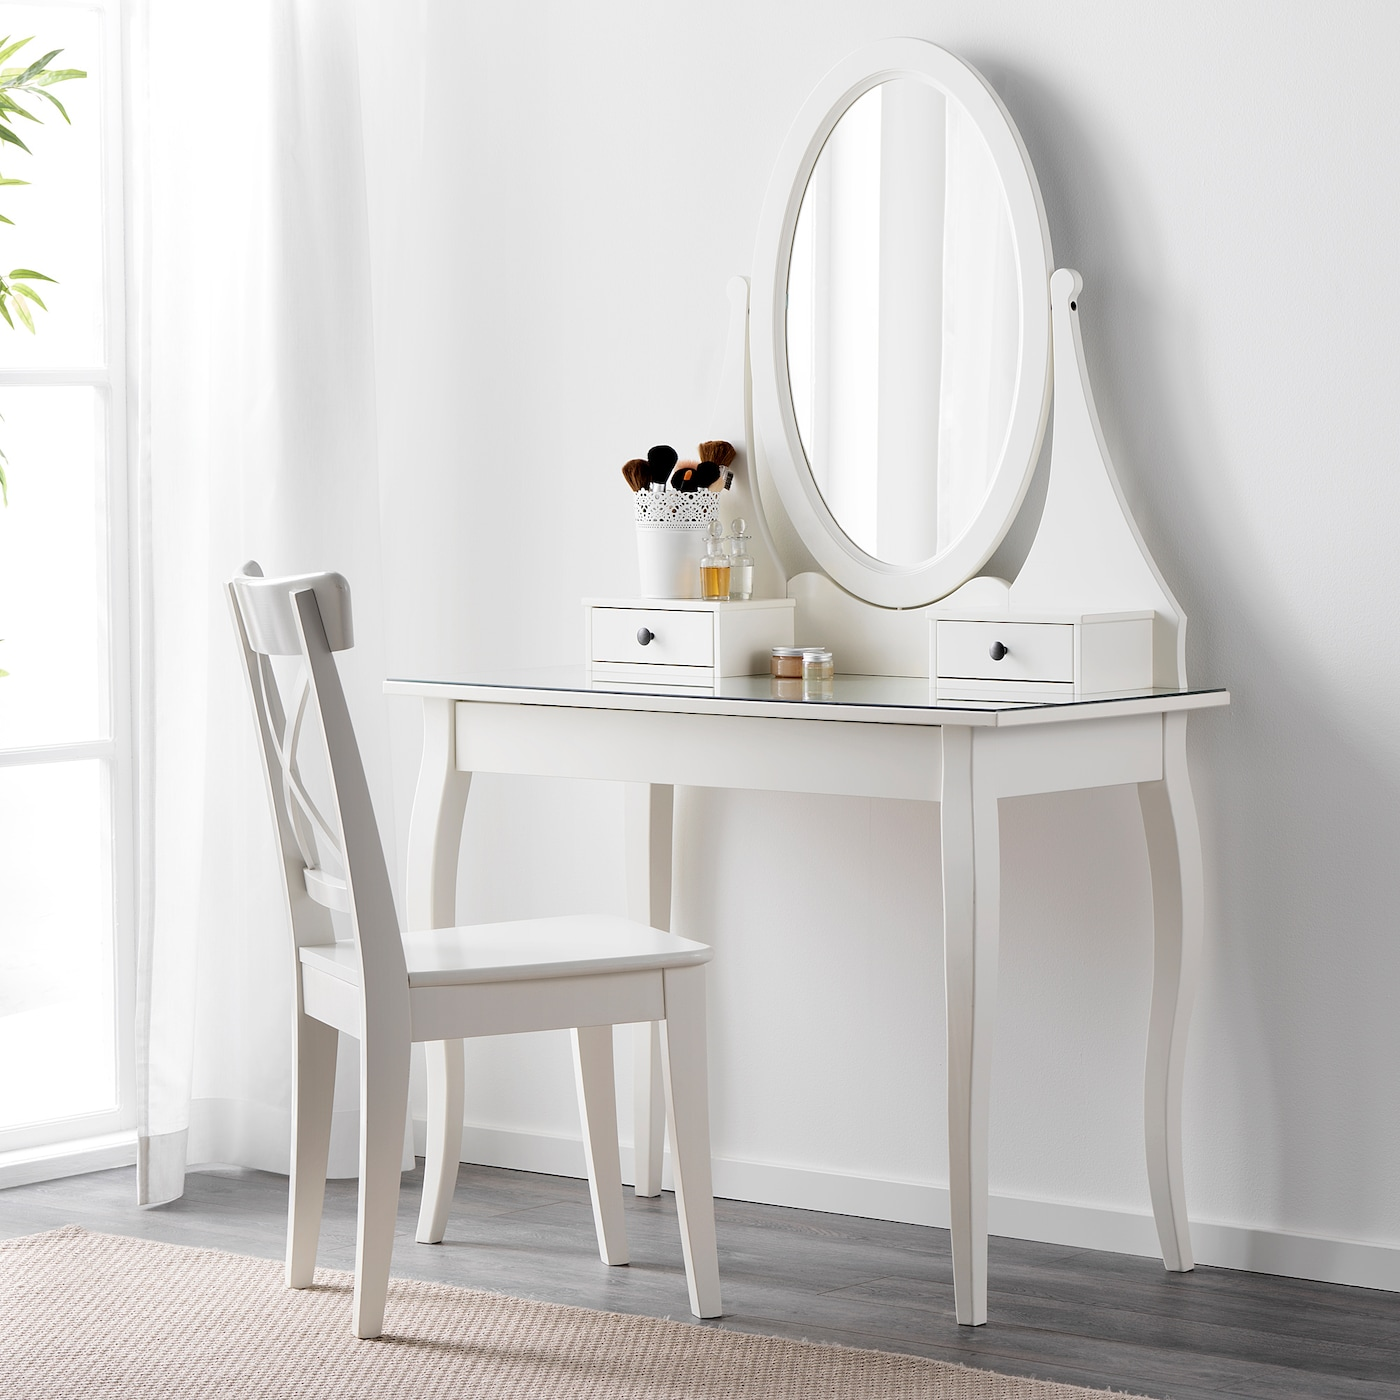 Hemnes Dressing Table With Mirror White 100x50 Cm Ikea